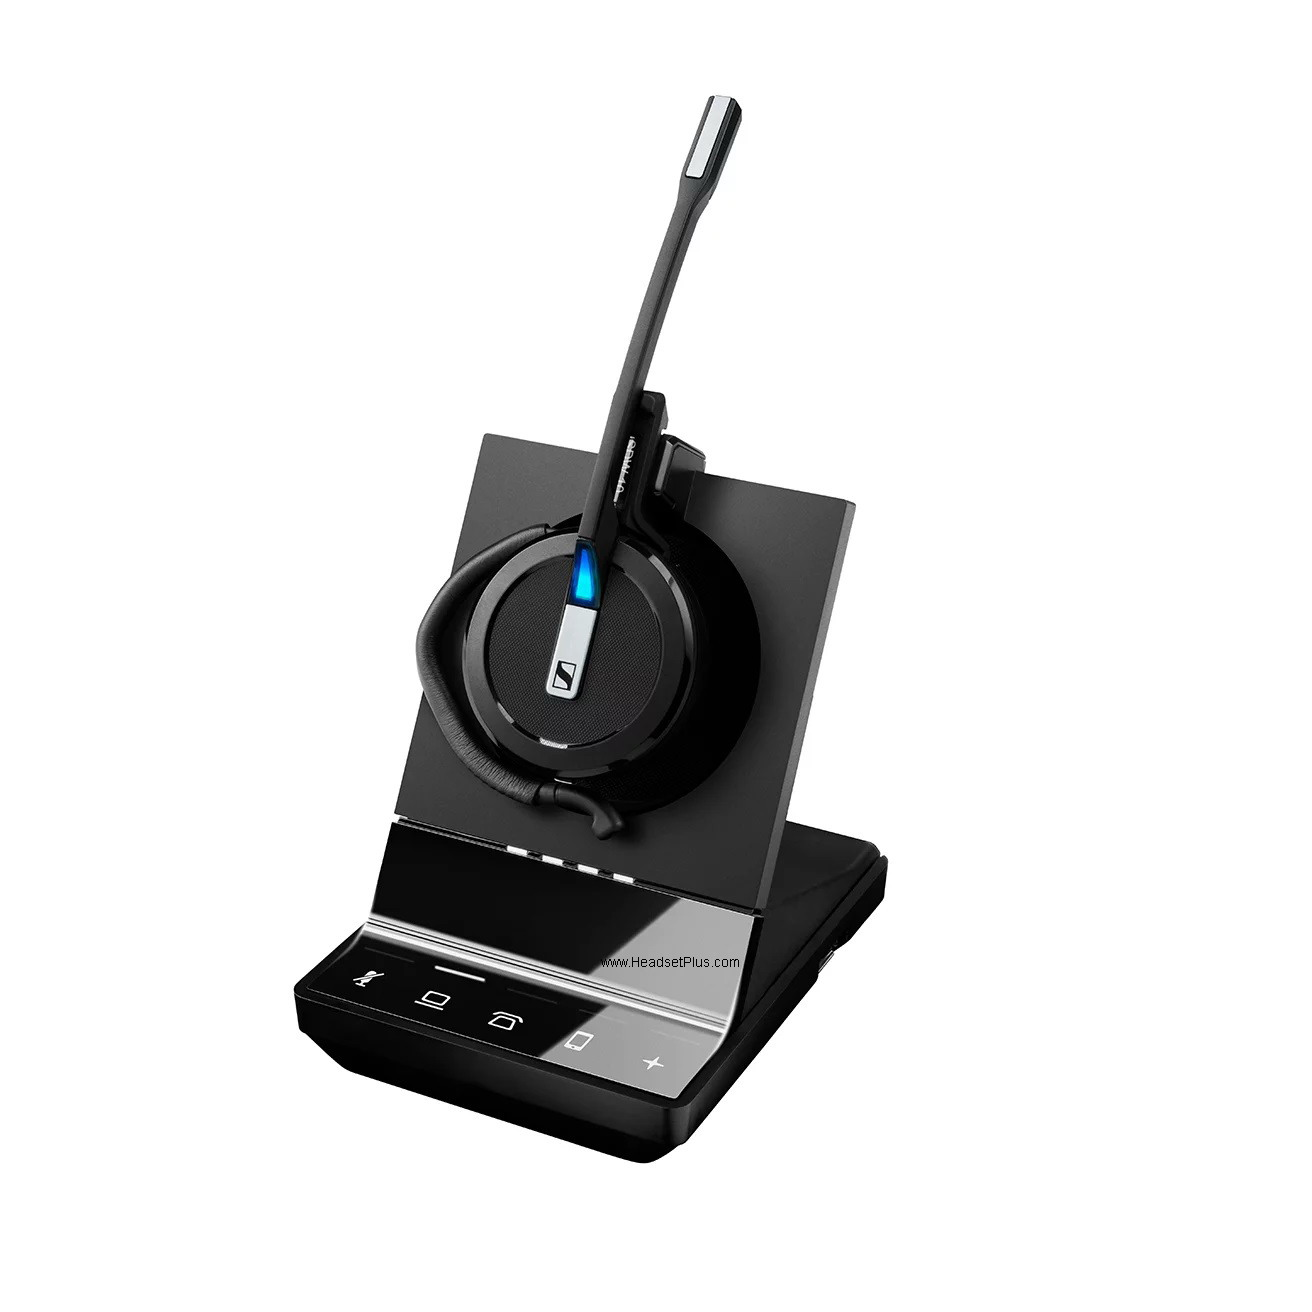 Sennheiser SDW 5015 Convertible Dual Connect Wireless Headset